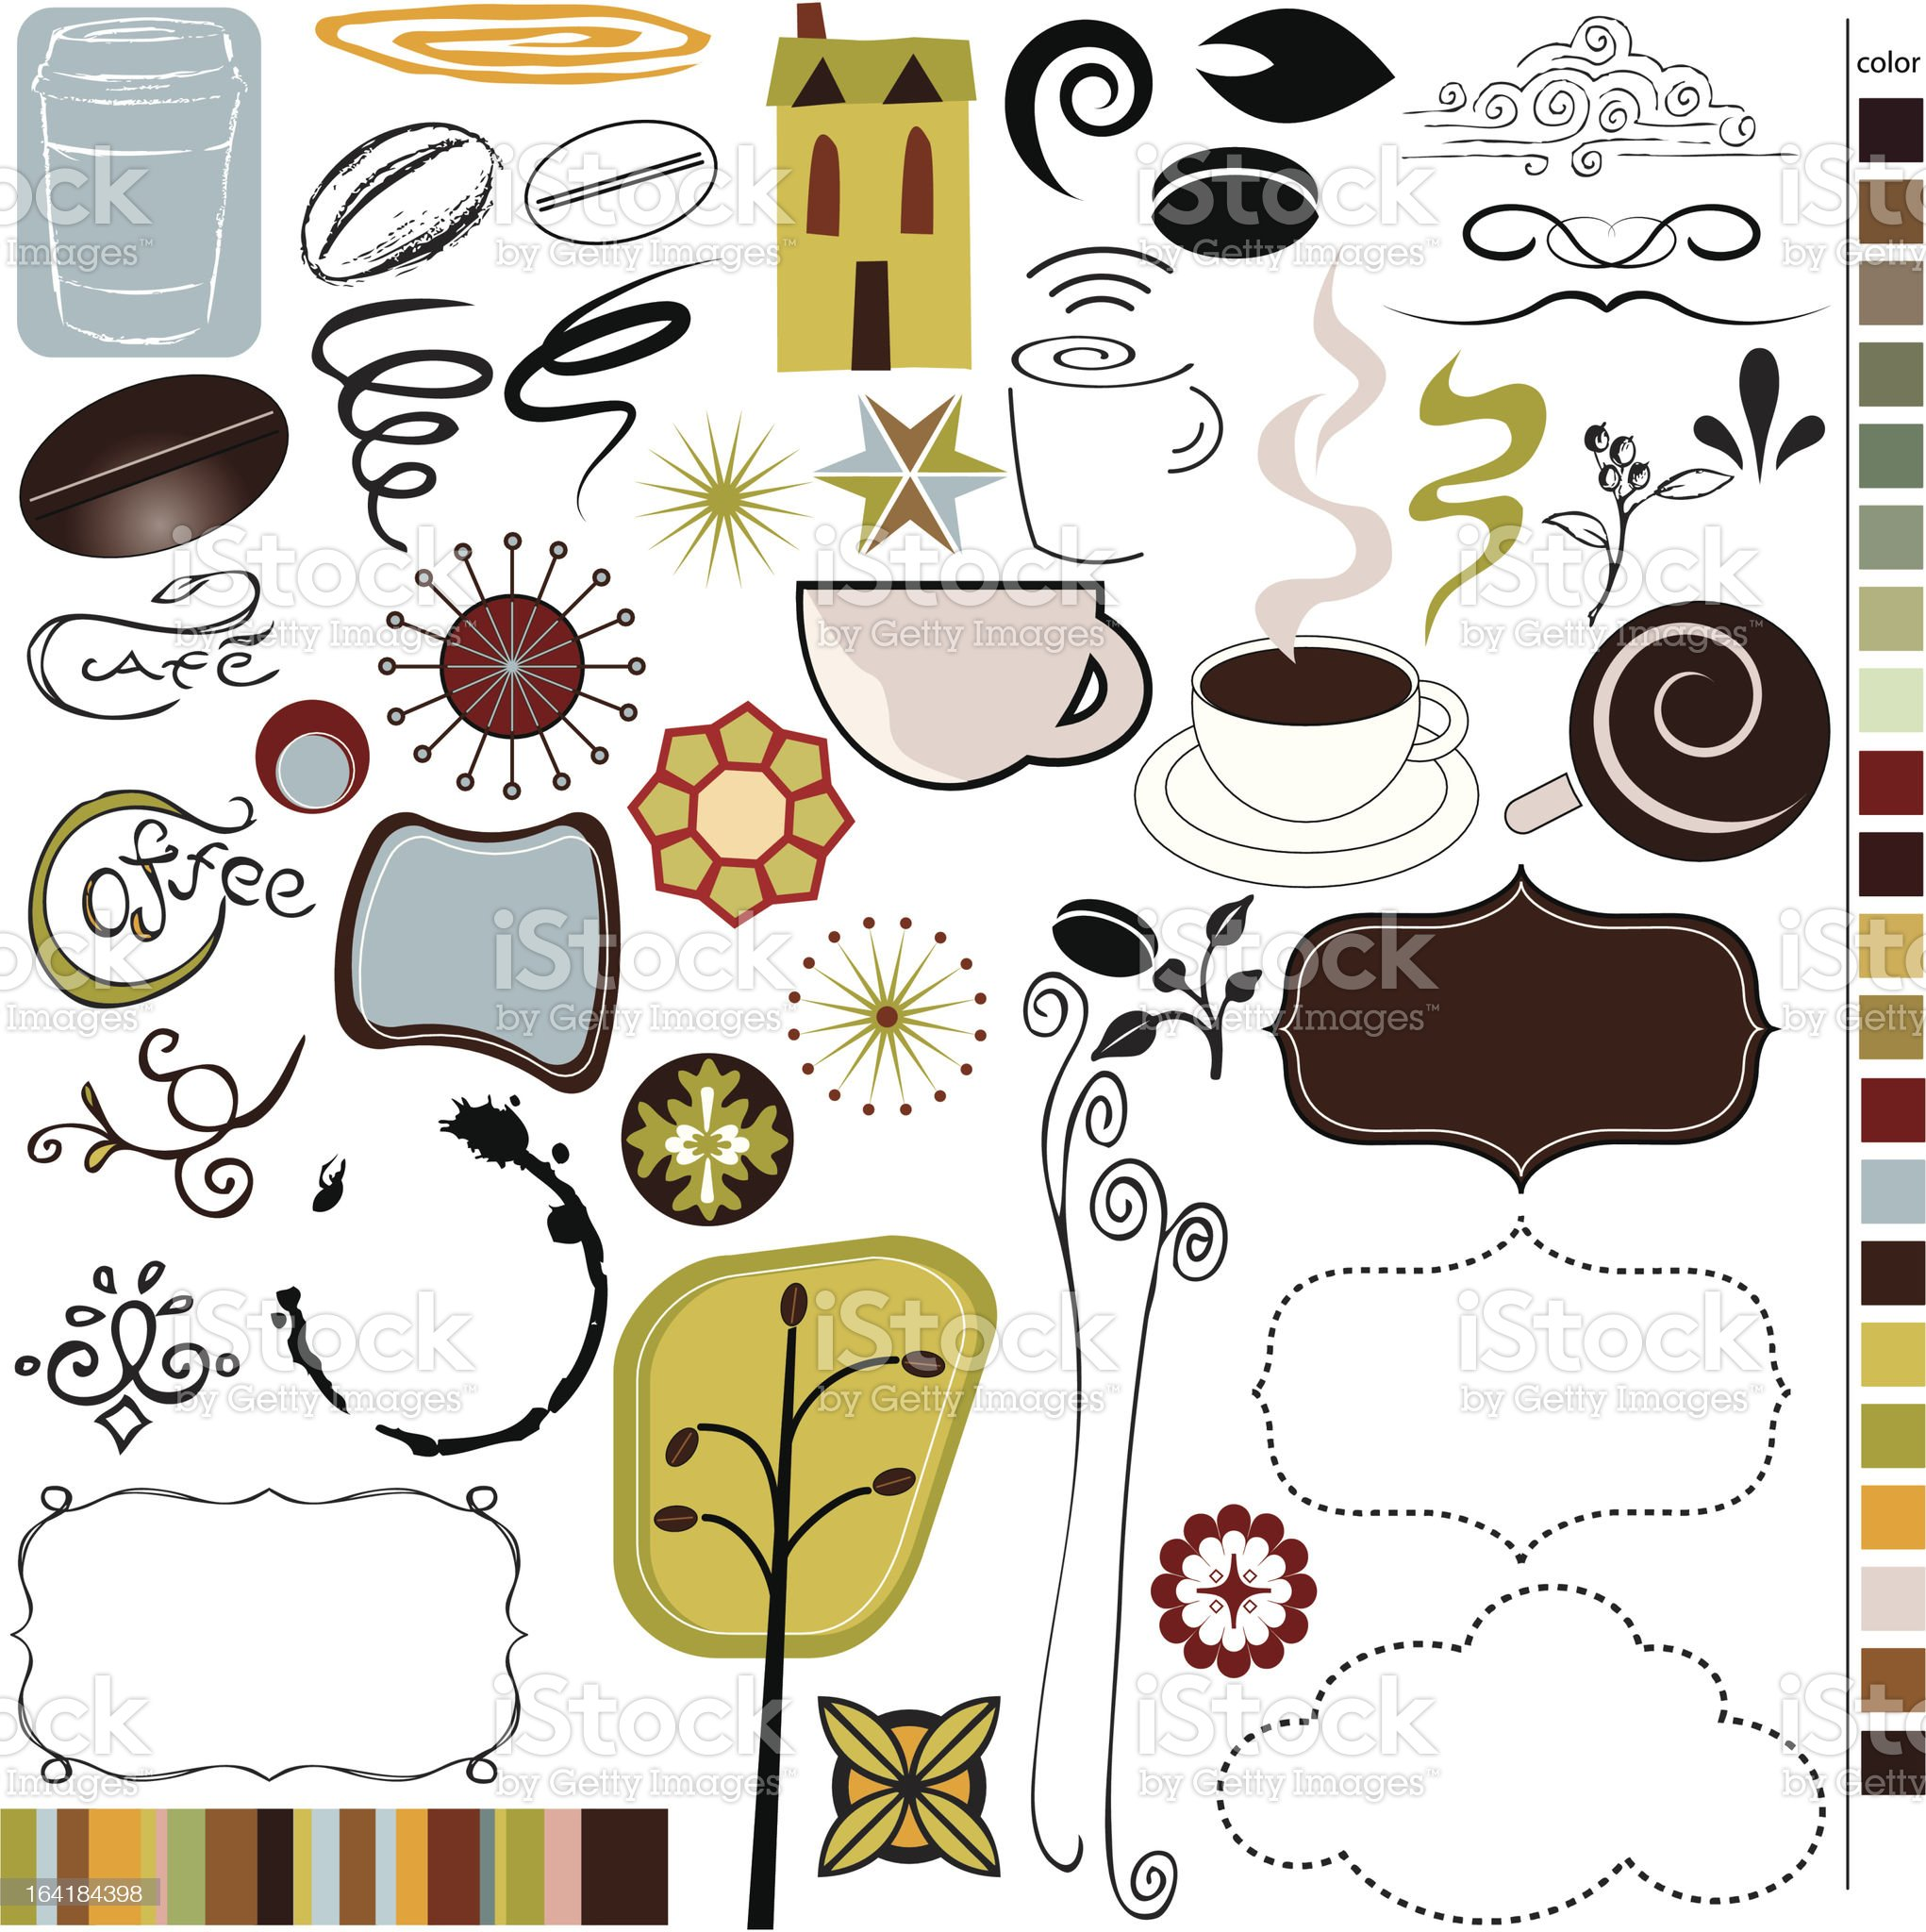 Coffee/Cafe graphics! royalty-free stock vector art